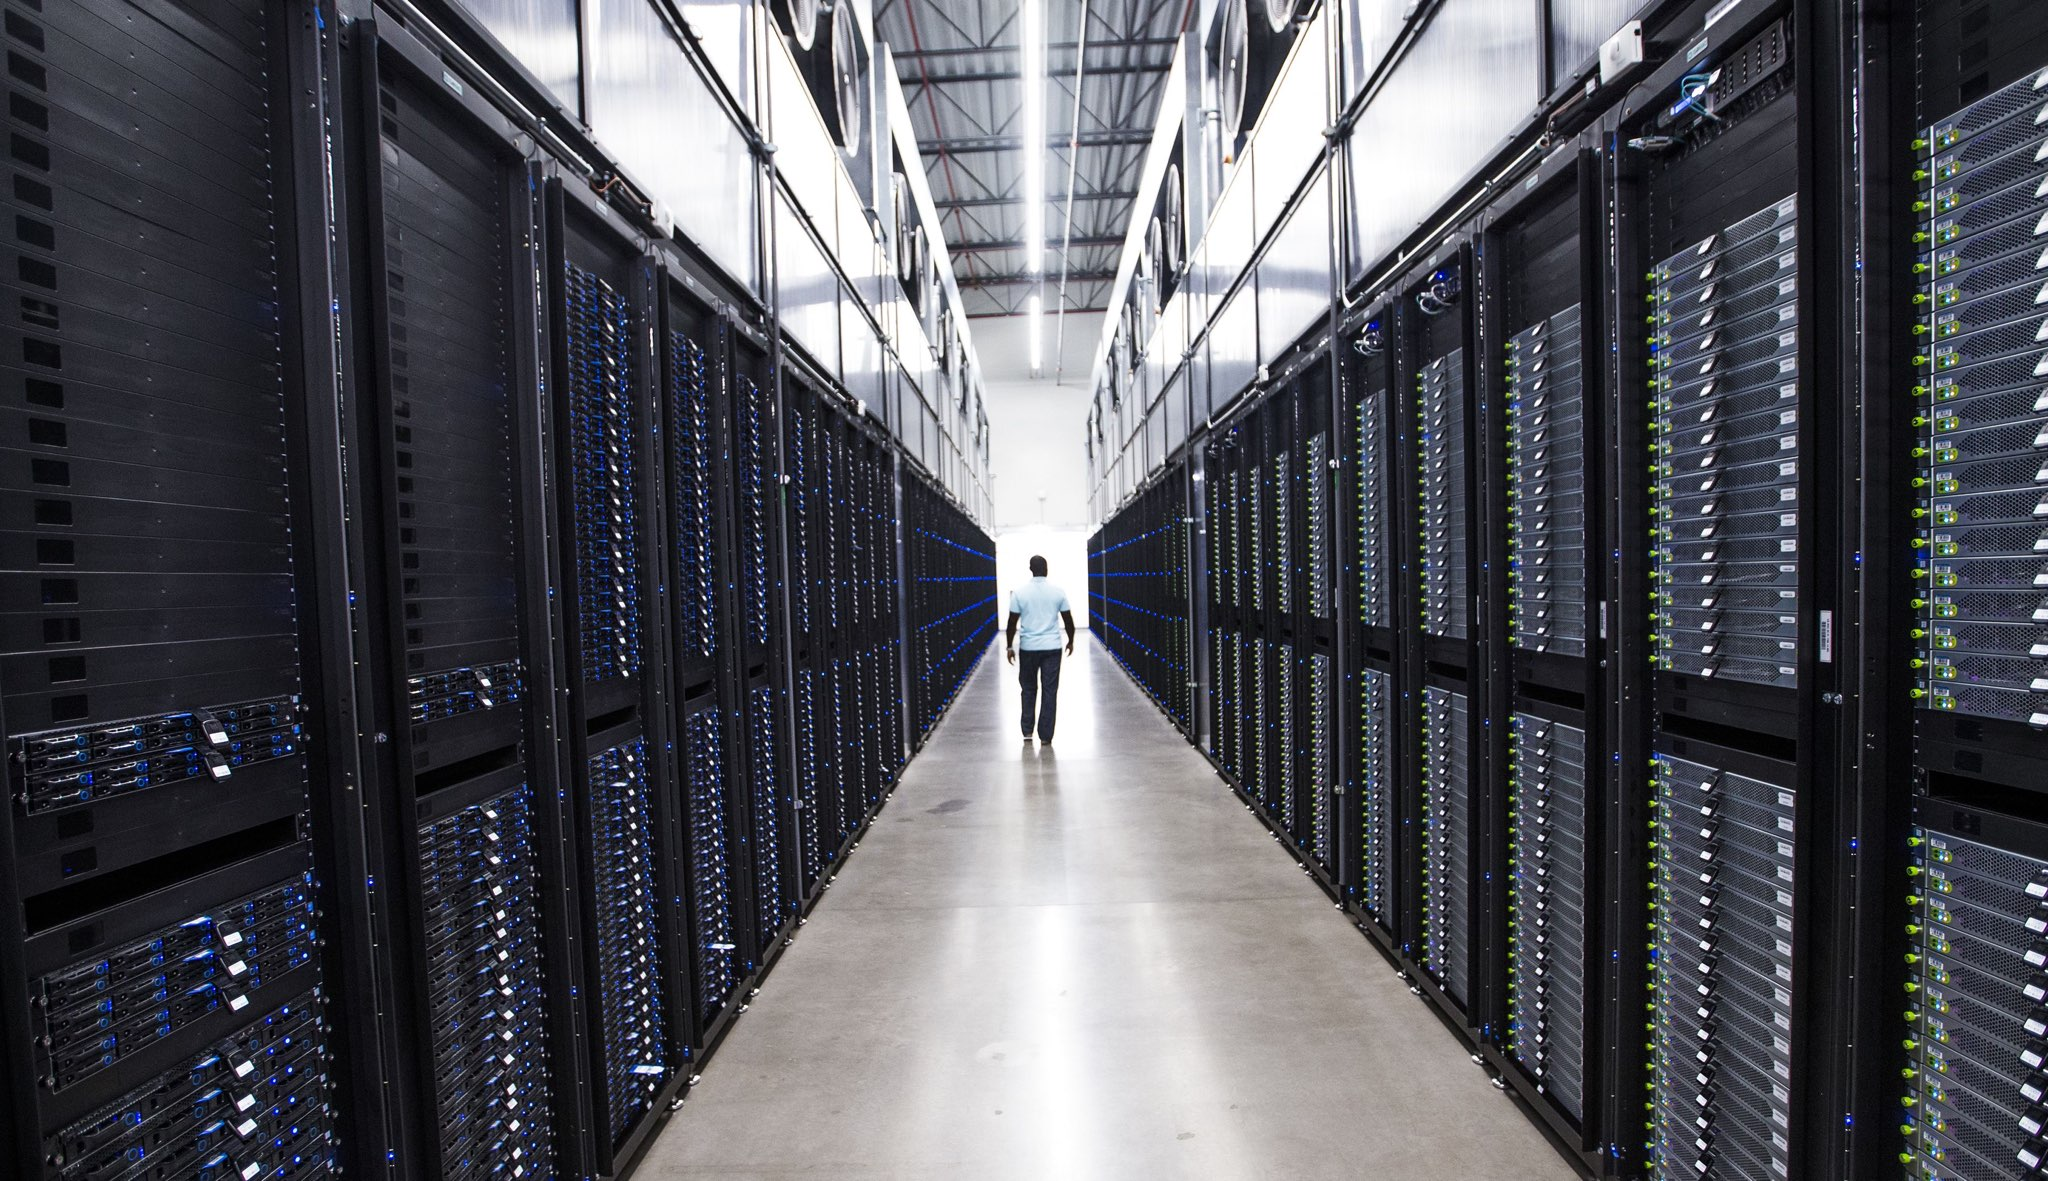 Apple's command center in Mesa, Arizona is used to oversee and manage all its data centers around the world